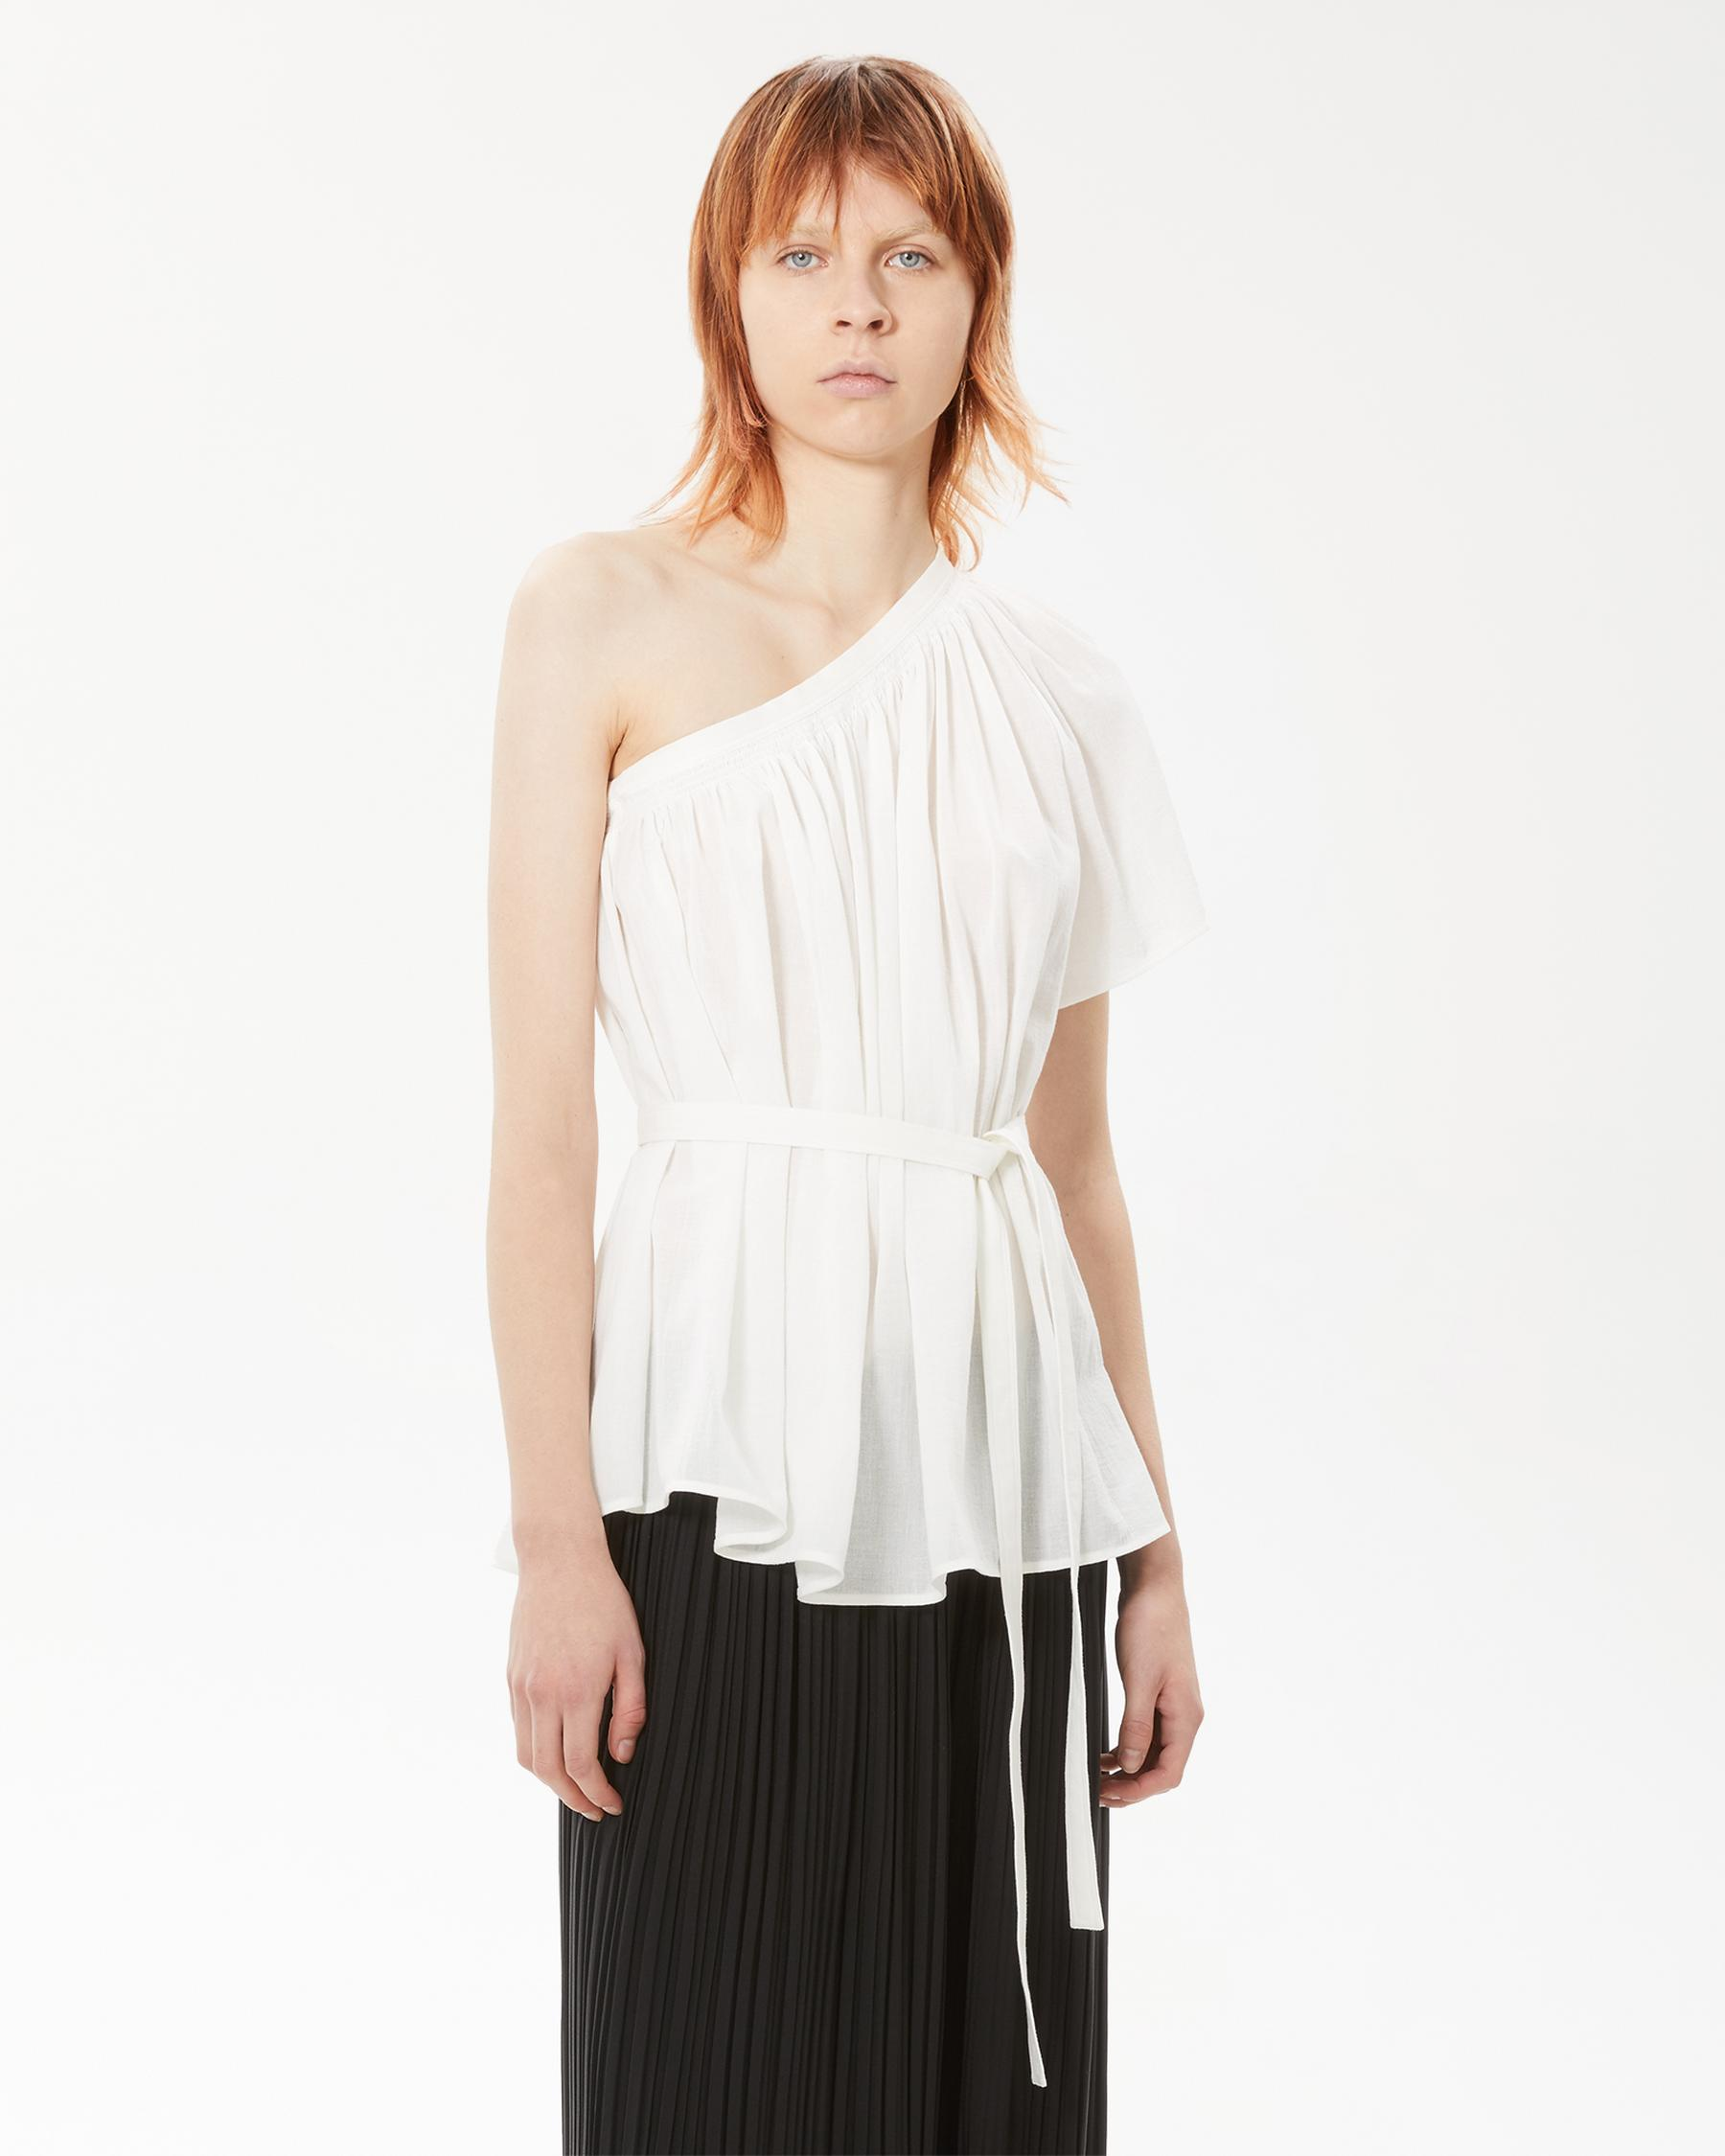 Helmut Lang 3 - Asymmetric Top